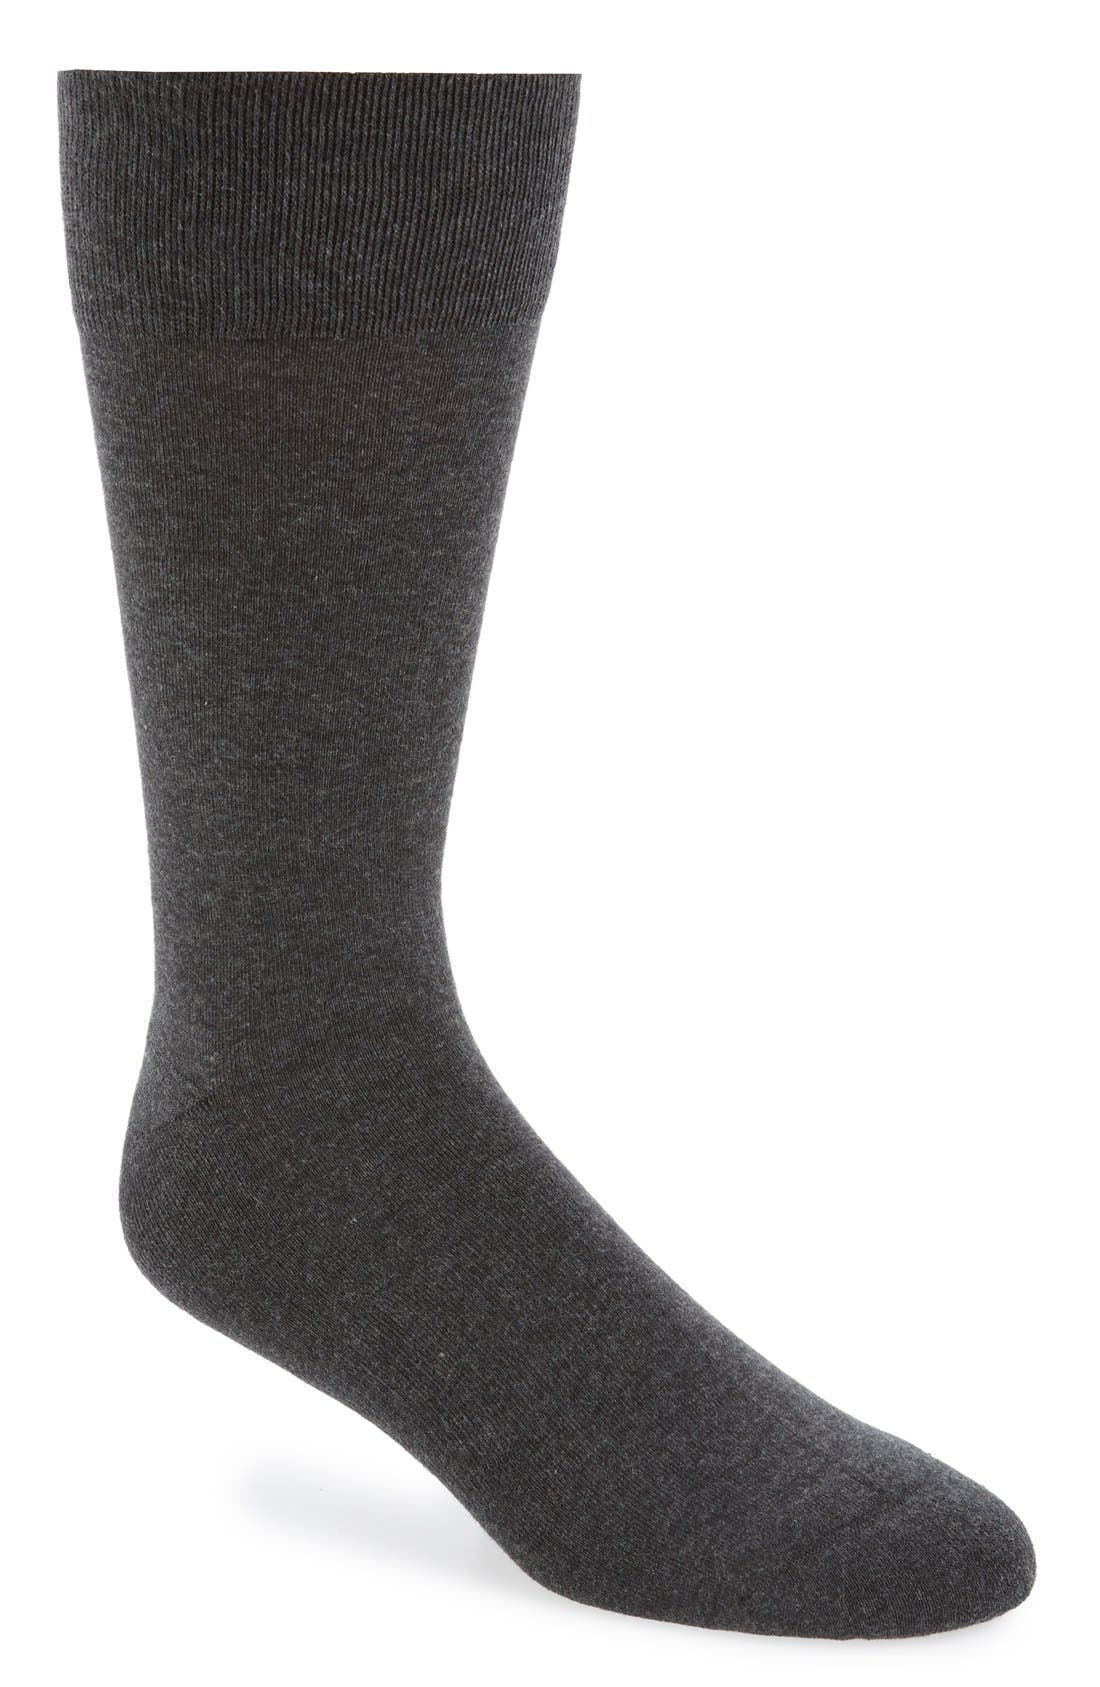 Cushion Foot Arch Support Socks,                             Main thumbnail 1, color,                             CHARCOAL HEATHER